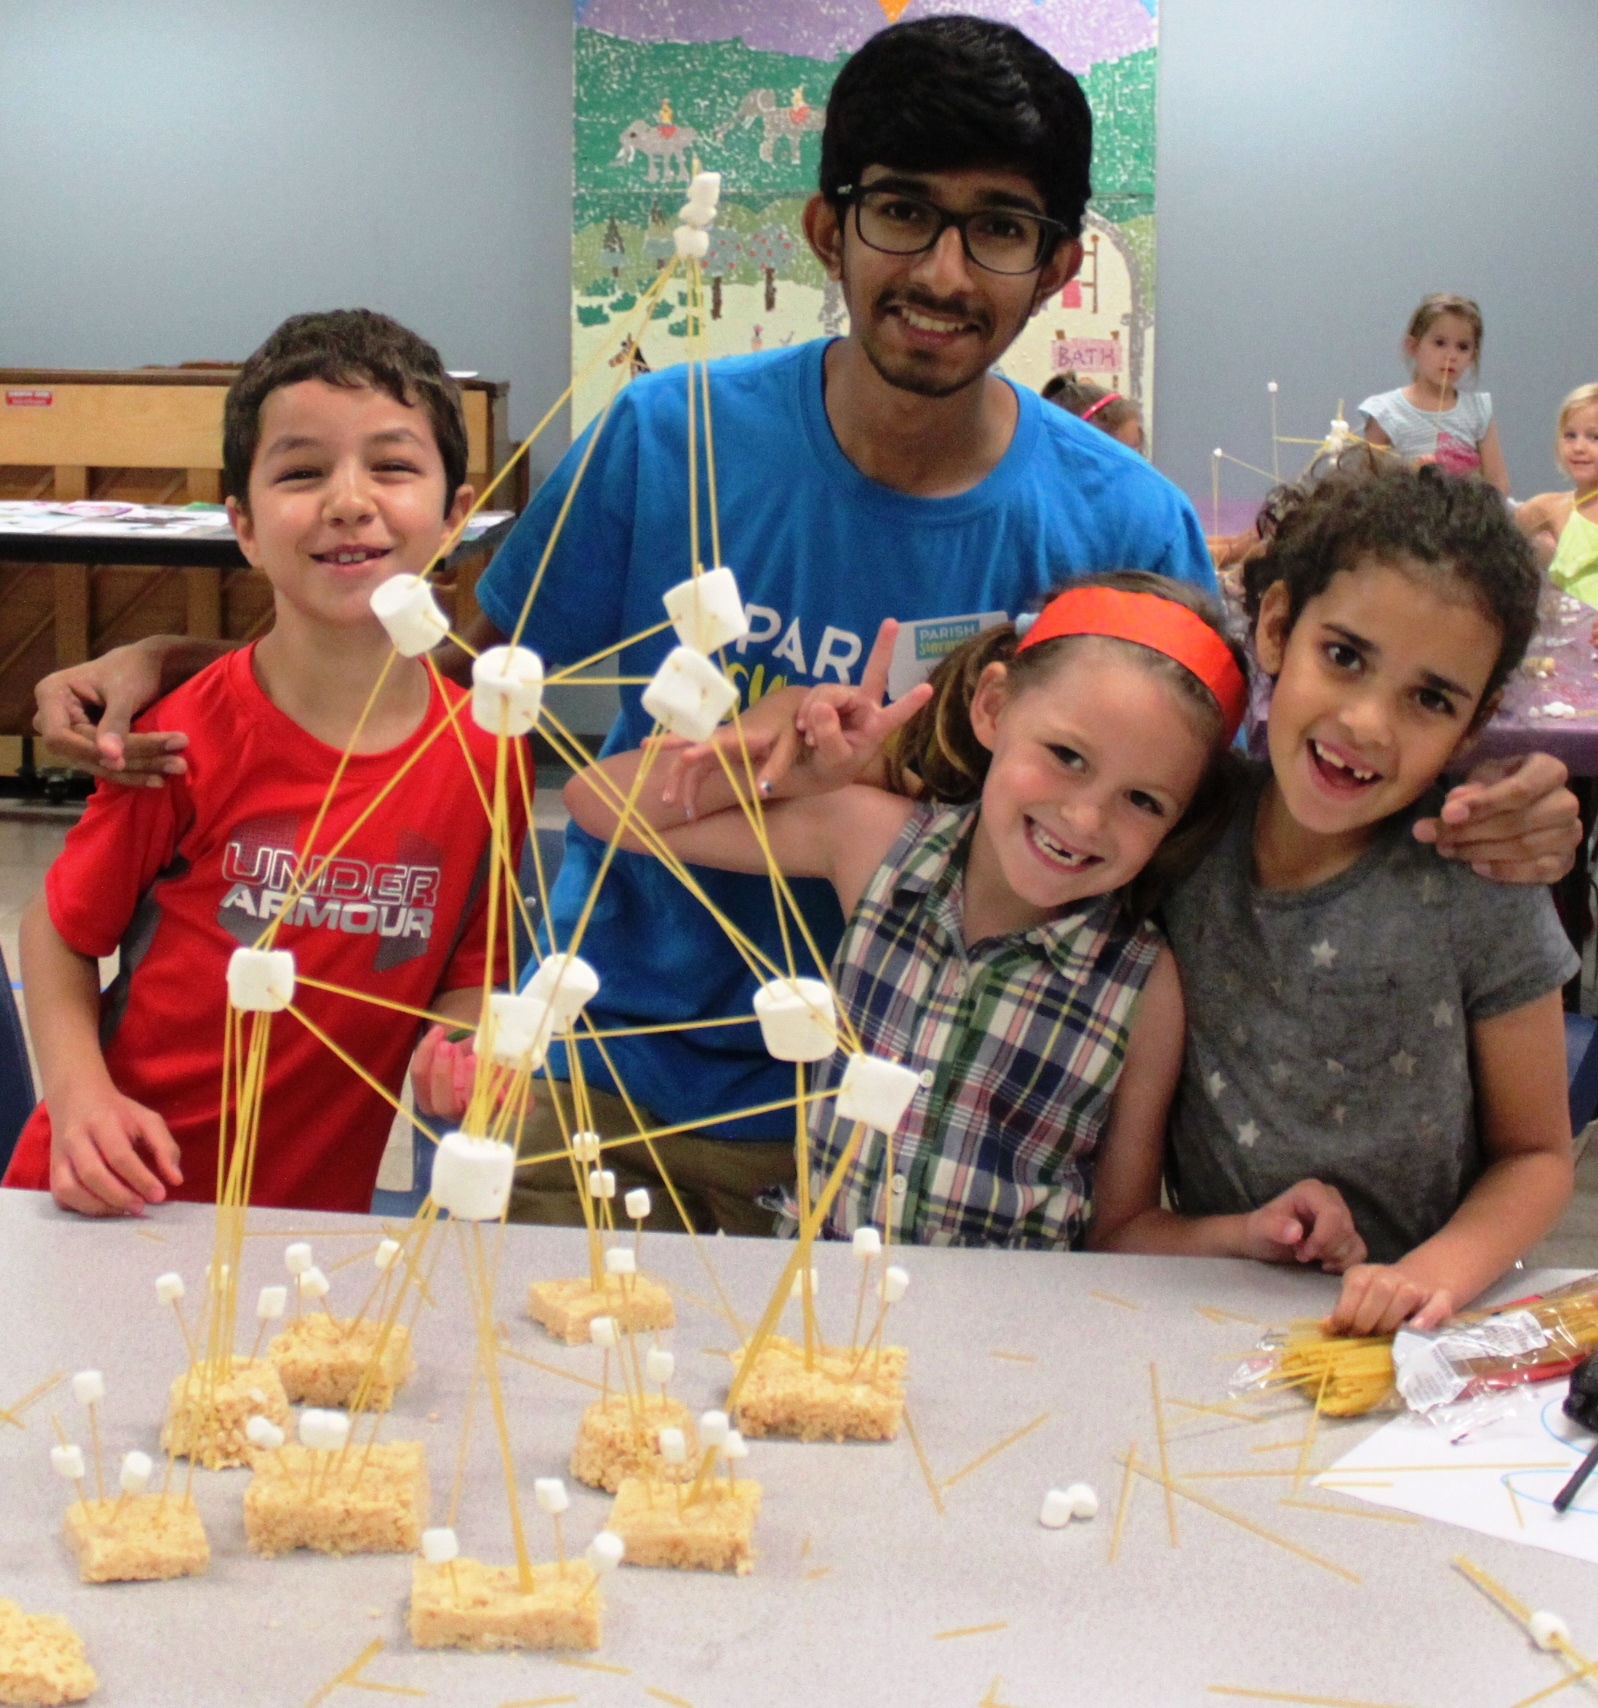 Parish Summer day camp counselor works with a group of kids on a STEM-based challenge during day camp in Dallas, Texas.